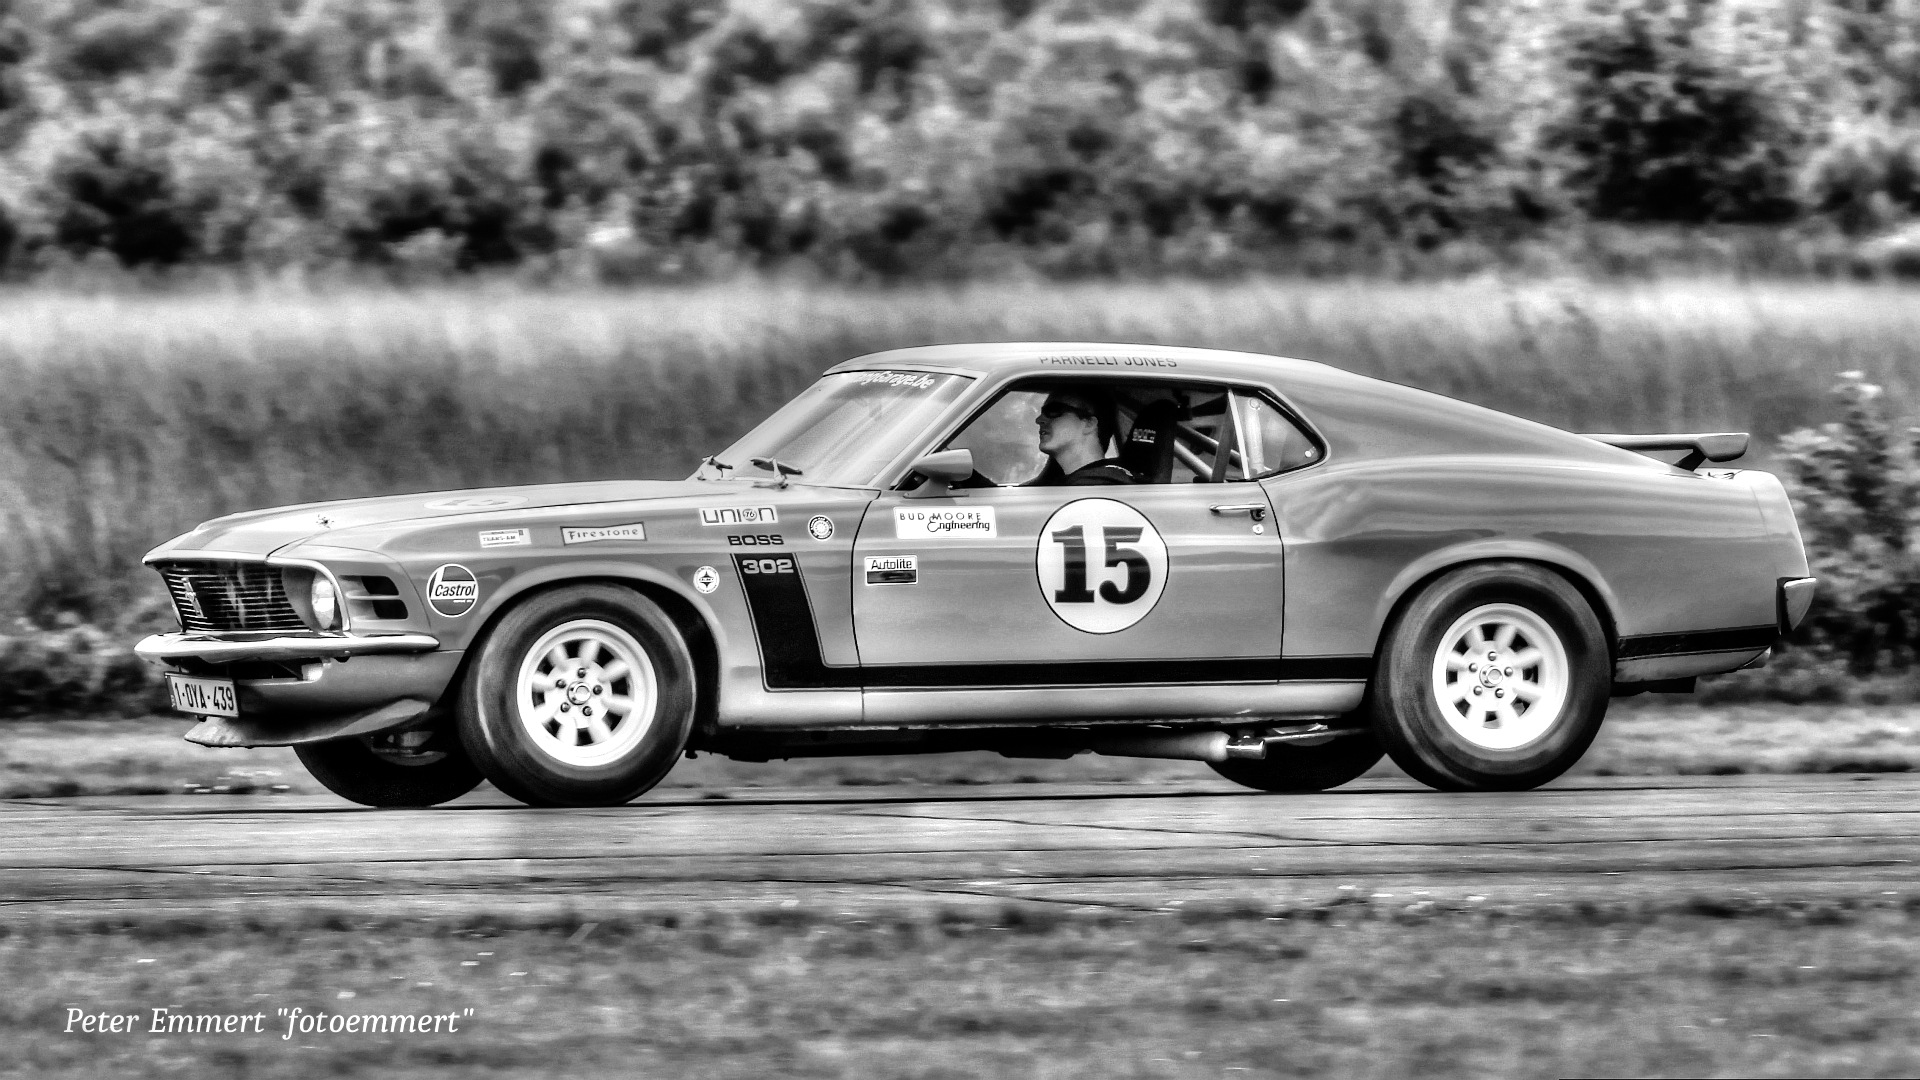 Ford Mustang by Peter Emmert